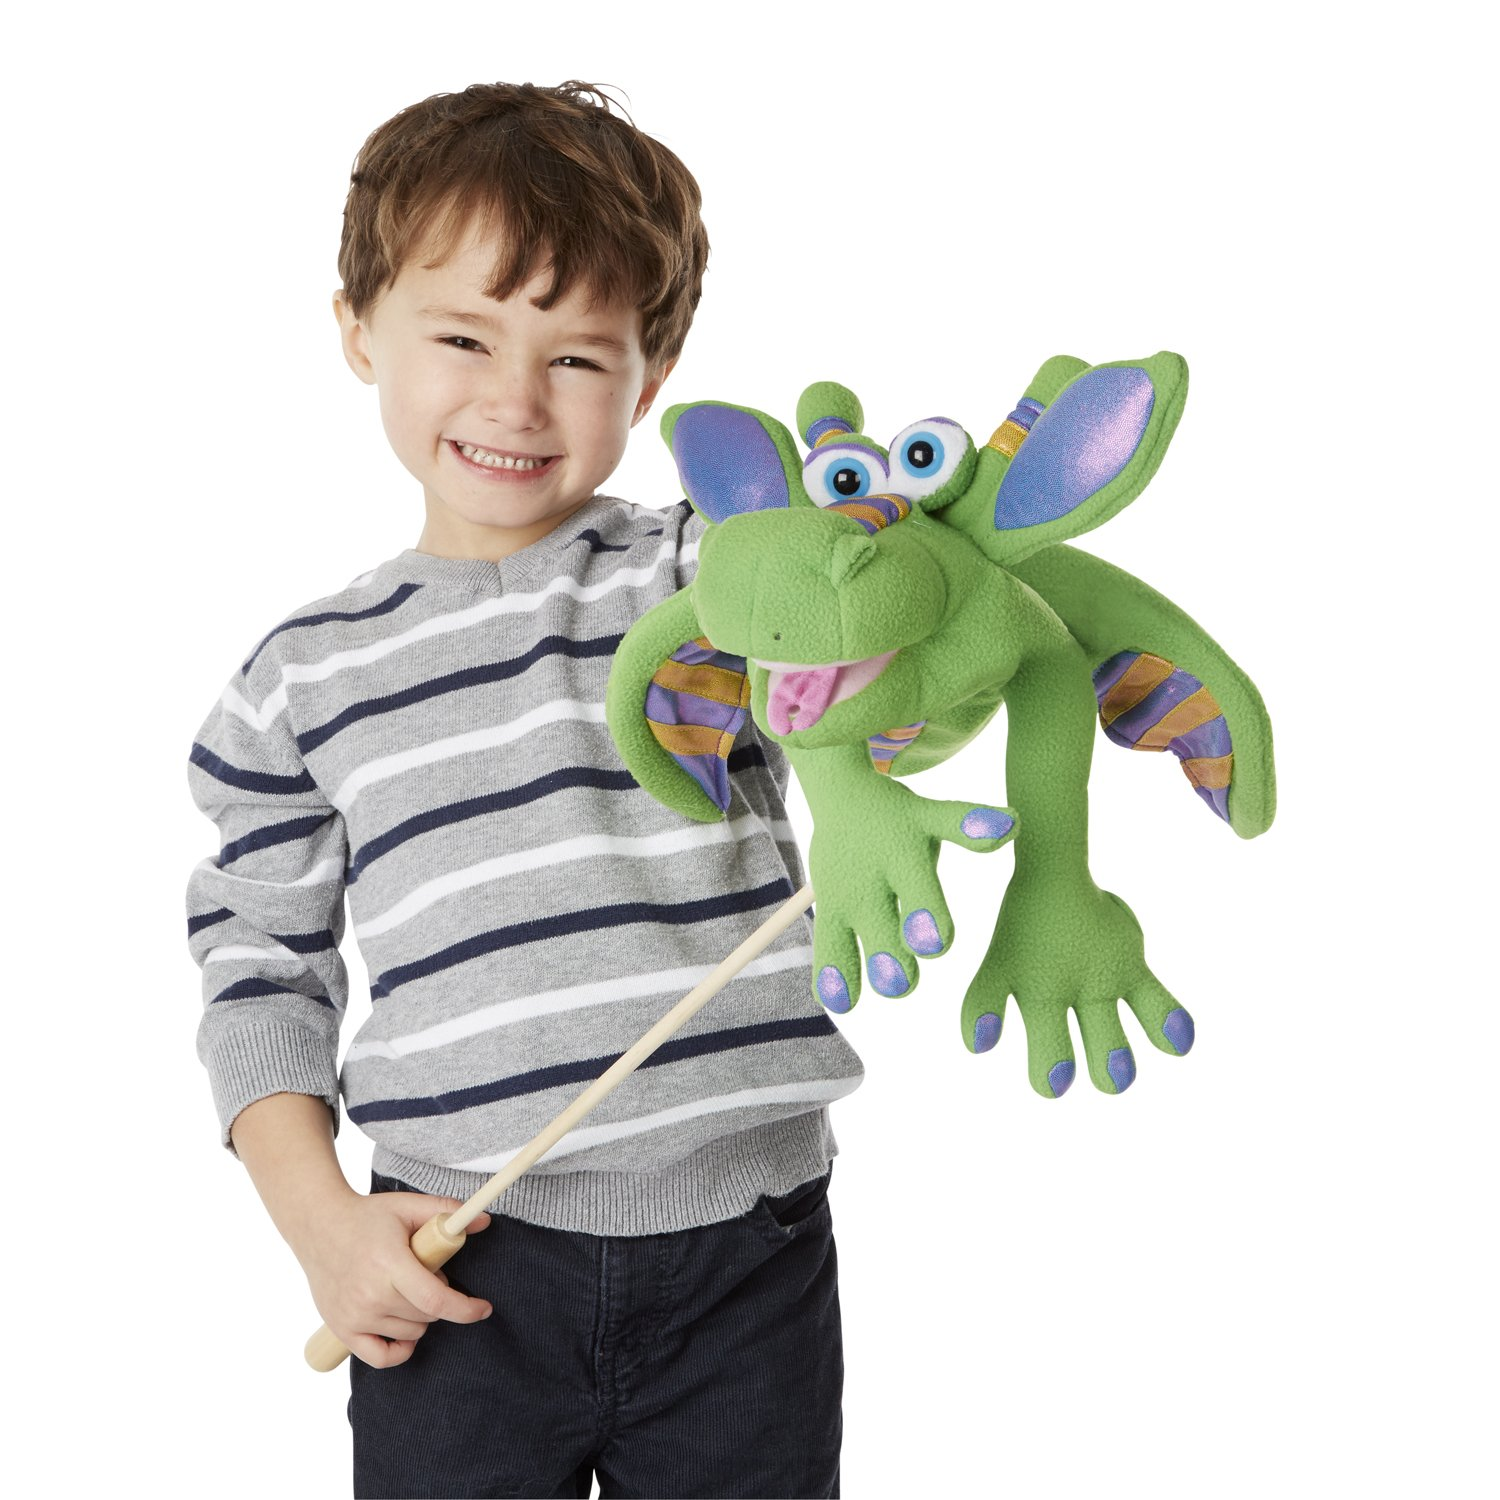 Soft toys toys at amazon co - Toys Amp Games Gt Vintage Amp Classic Toys Gt Puppets Gt See More Melissa